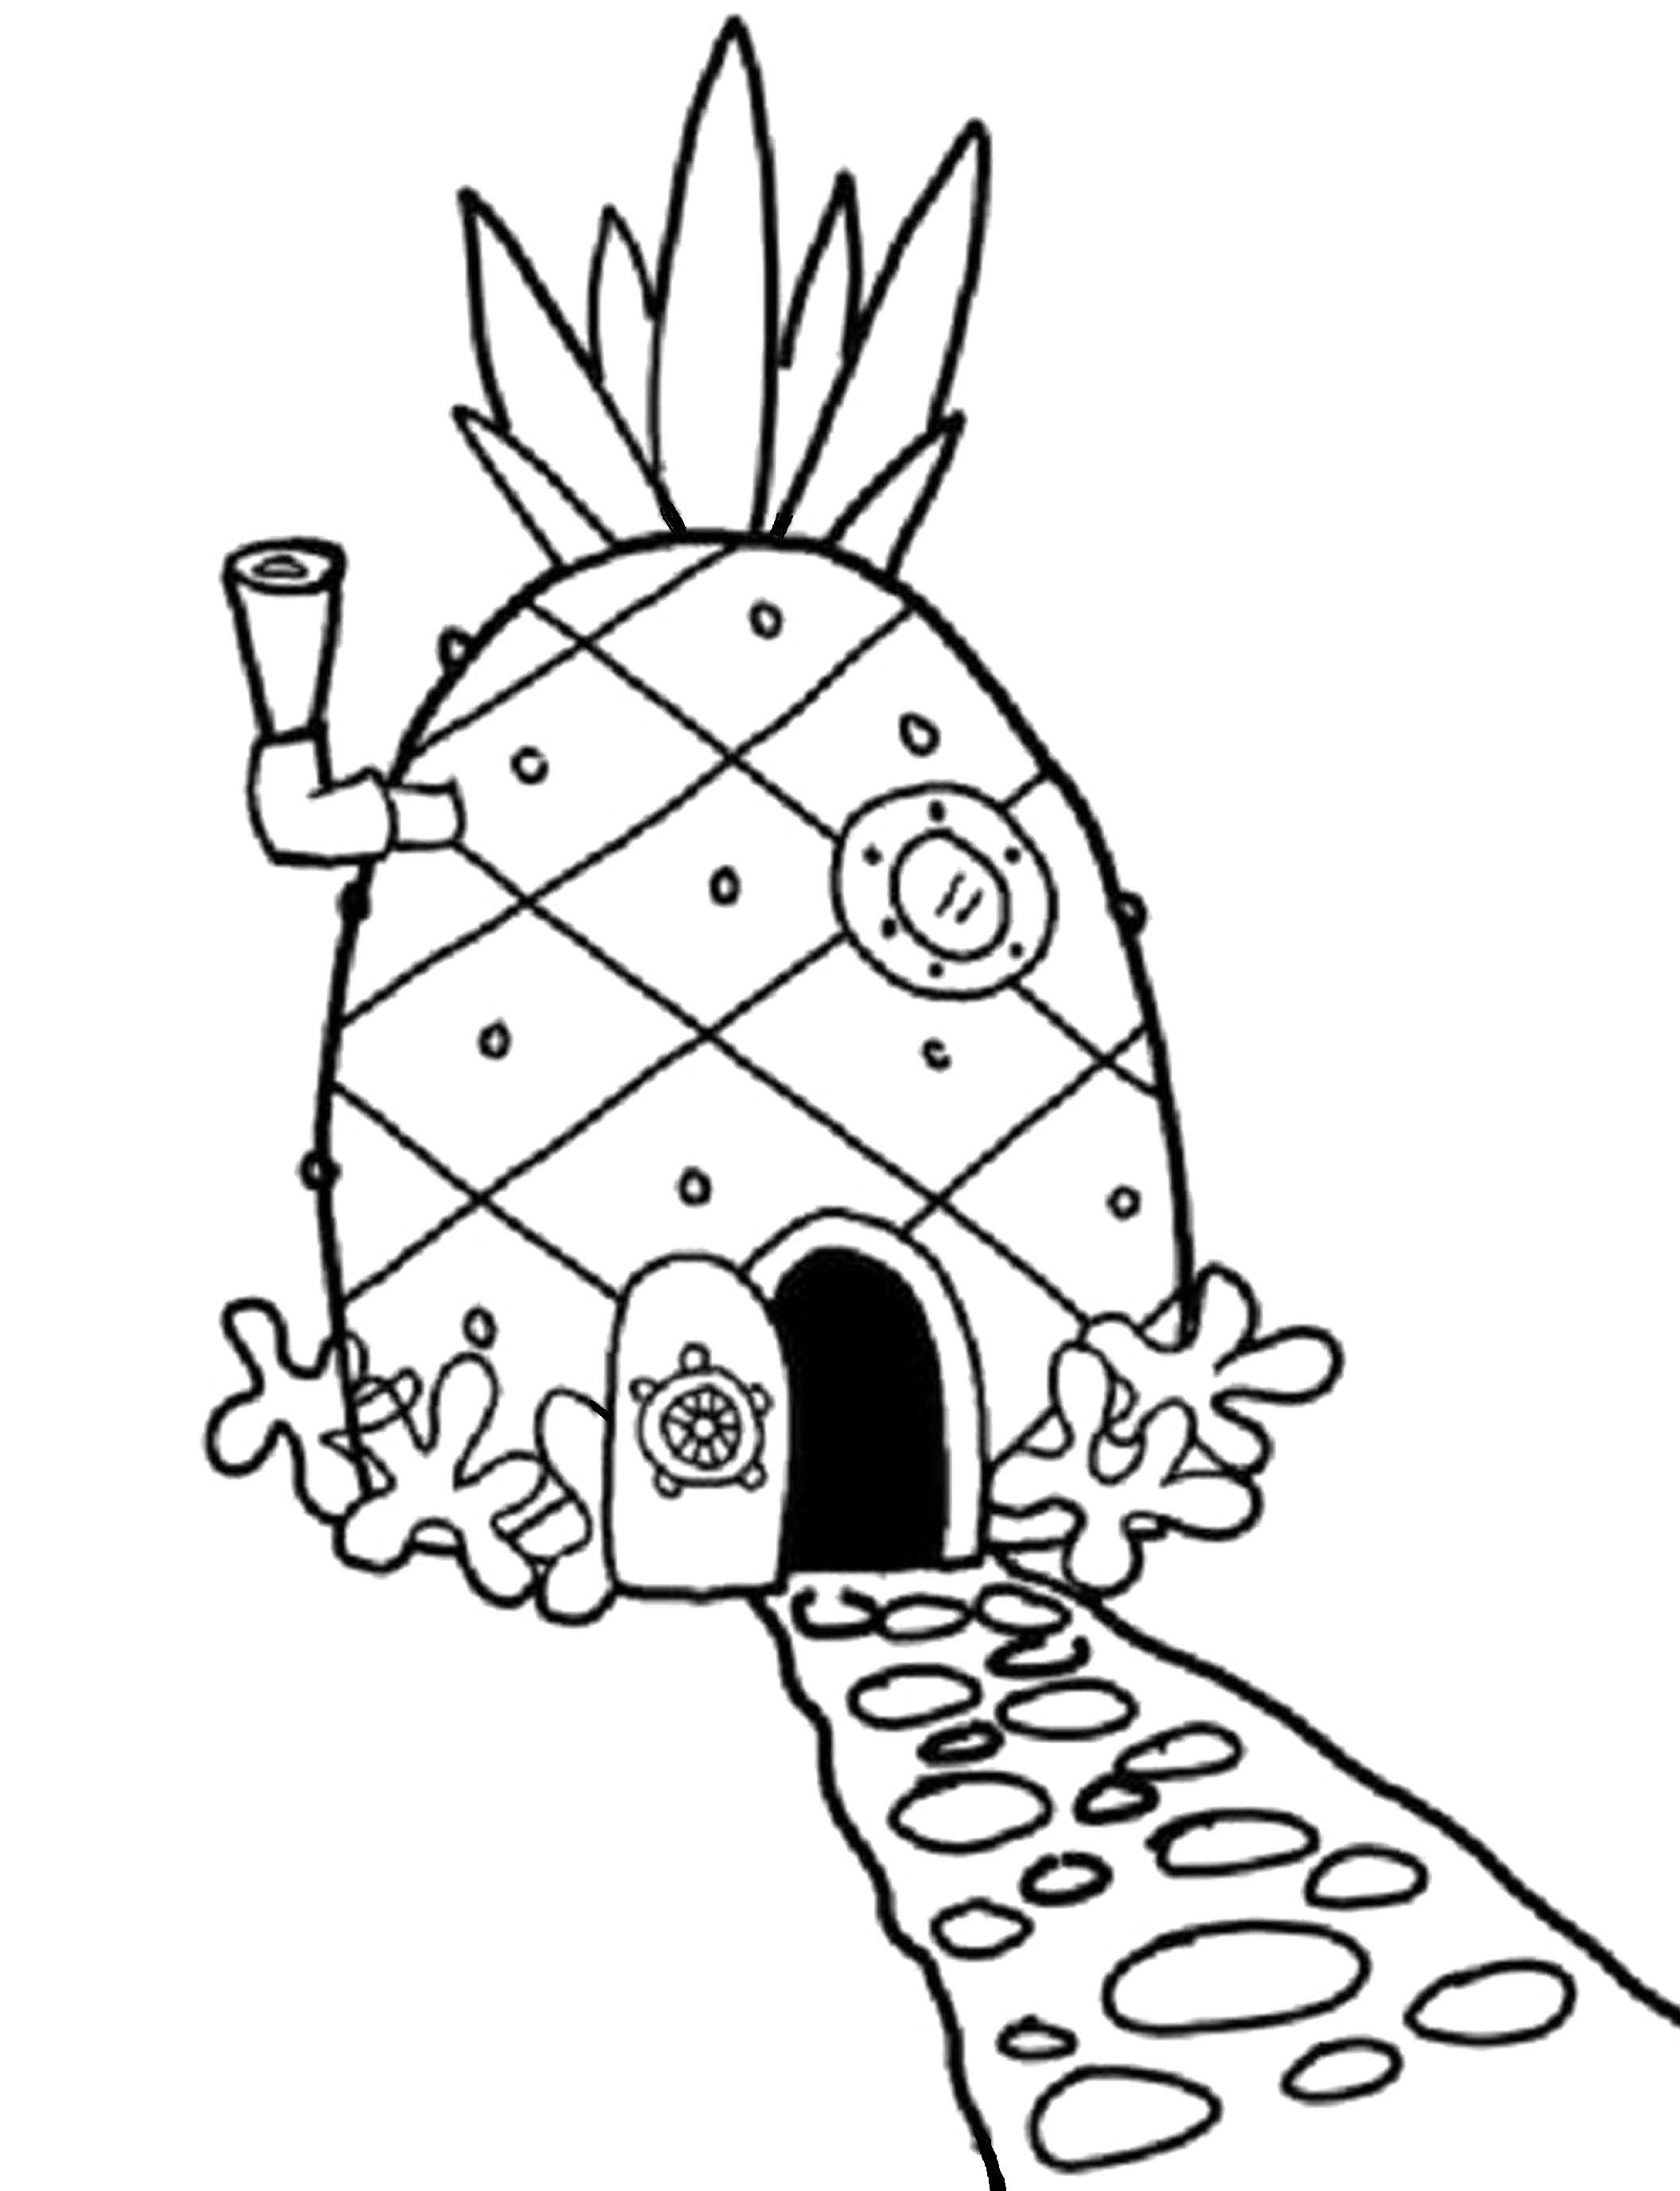 Spongebob House Coloring Pages With Images Spongebob Drawings